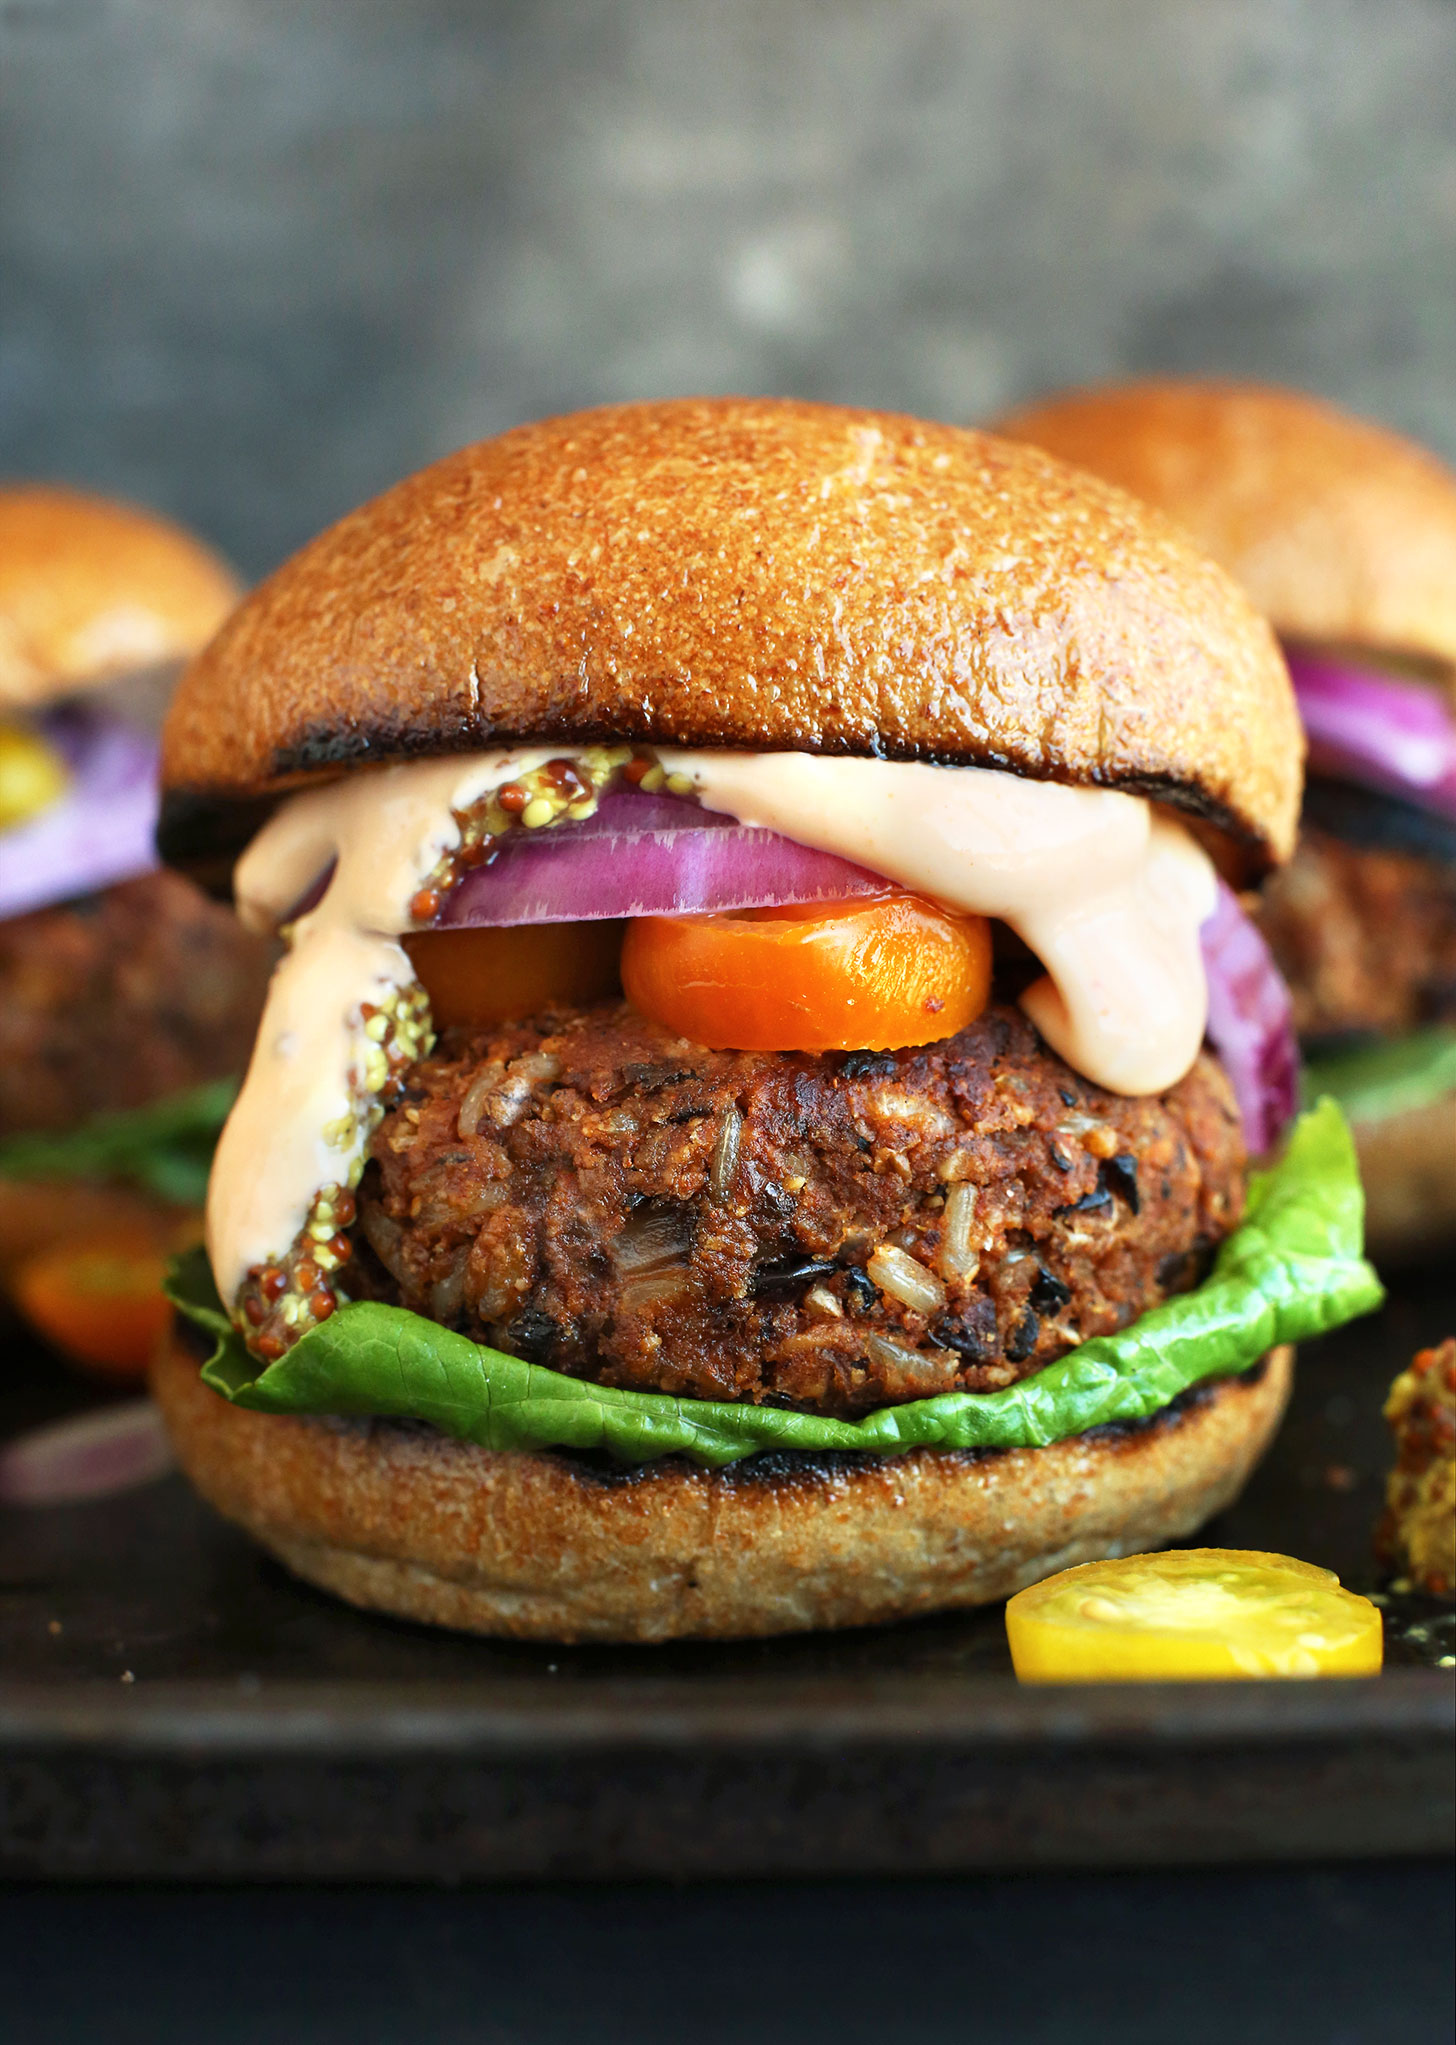 AMAZING-GRILLABLE-Veggie-Burgers-Hearty-flavorful-and-hold-up-on-the-grill-or-skillet-vegan-veggieburger-grilling-dinner-healthy-recipe